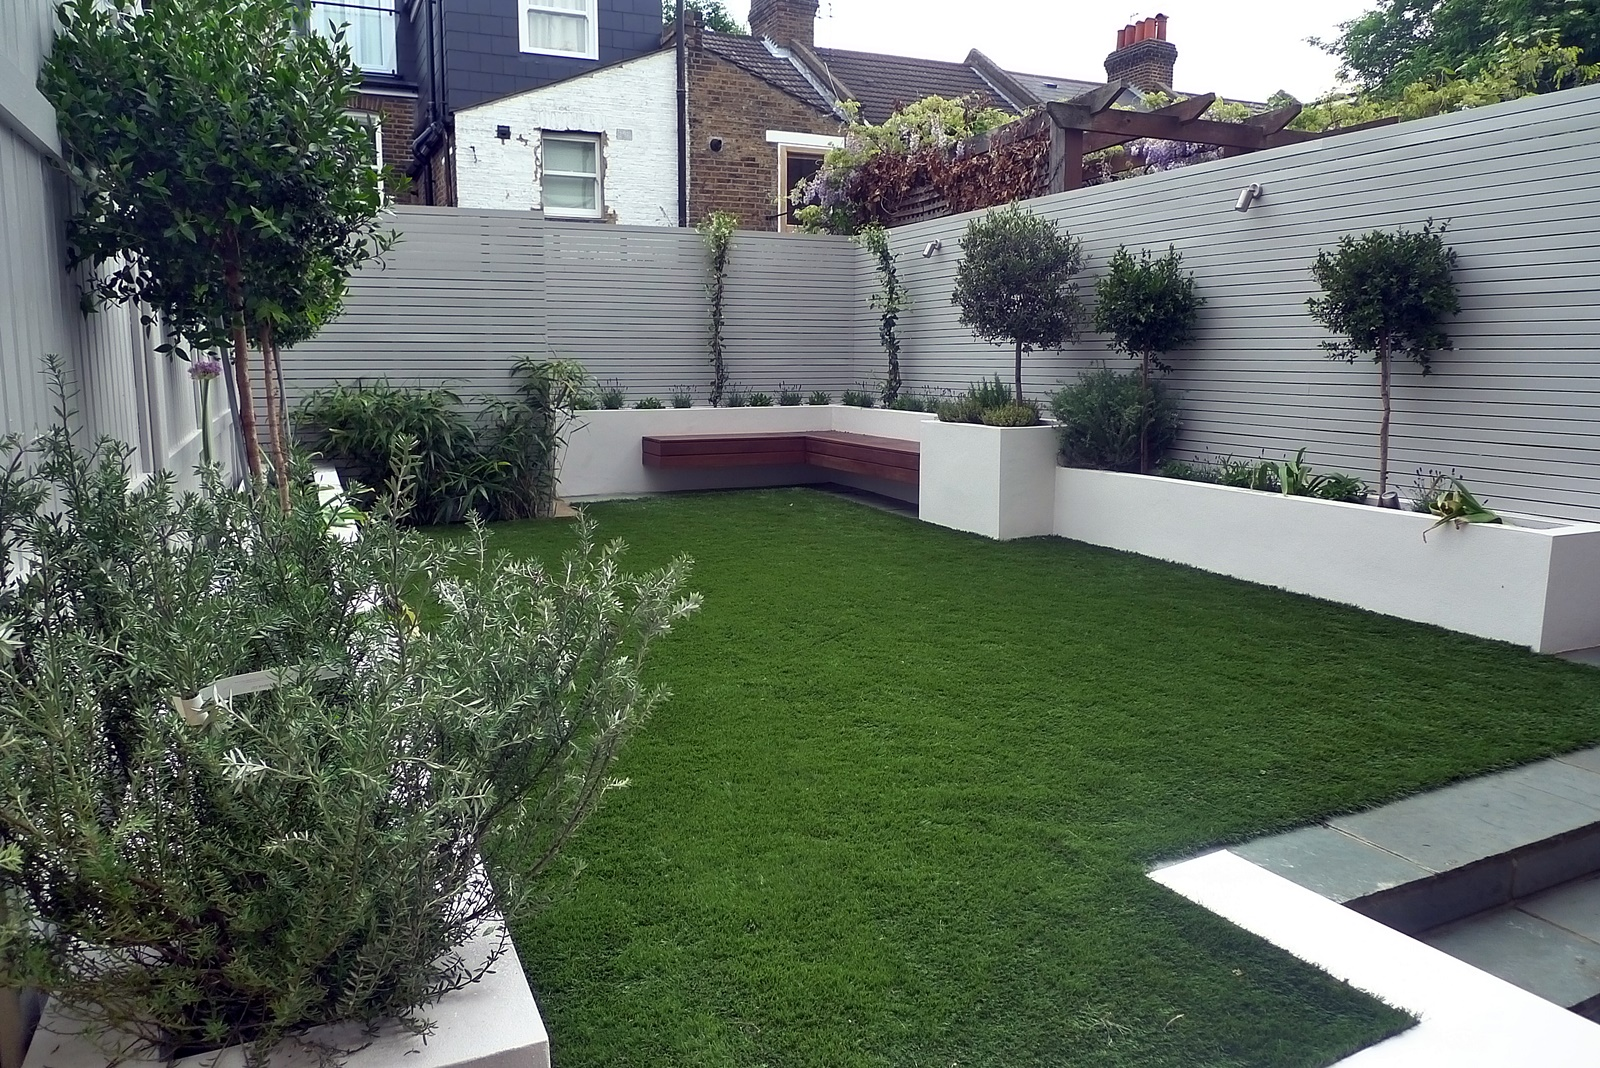 London garden blog london garden blog gardens from for Modern backyard ideas